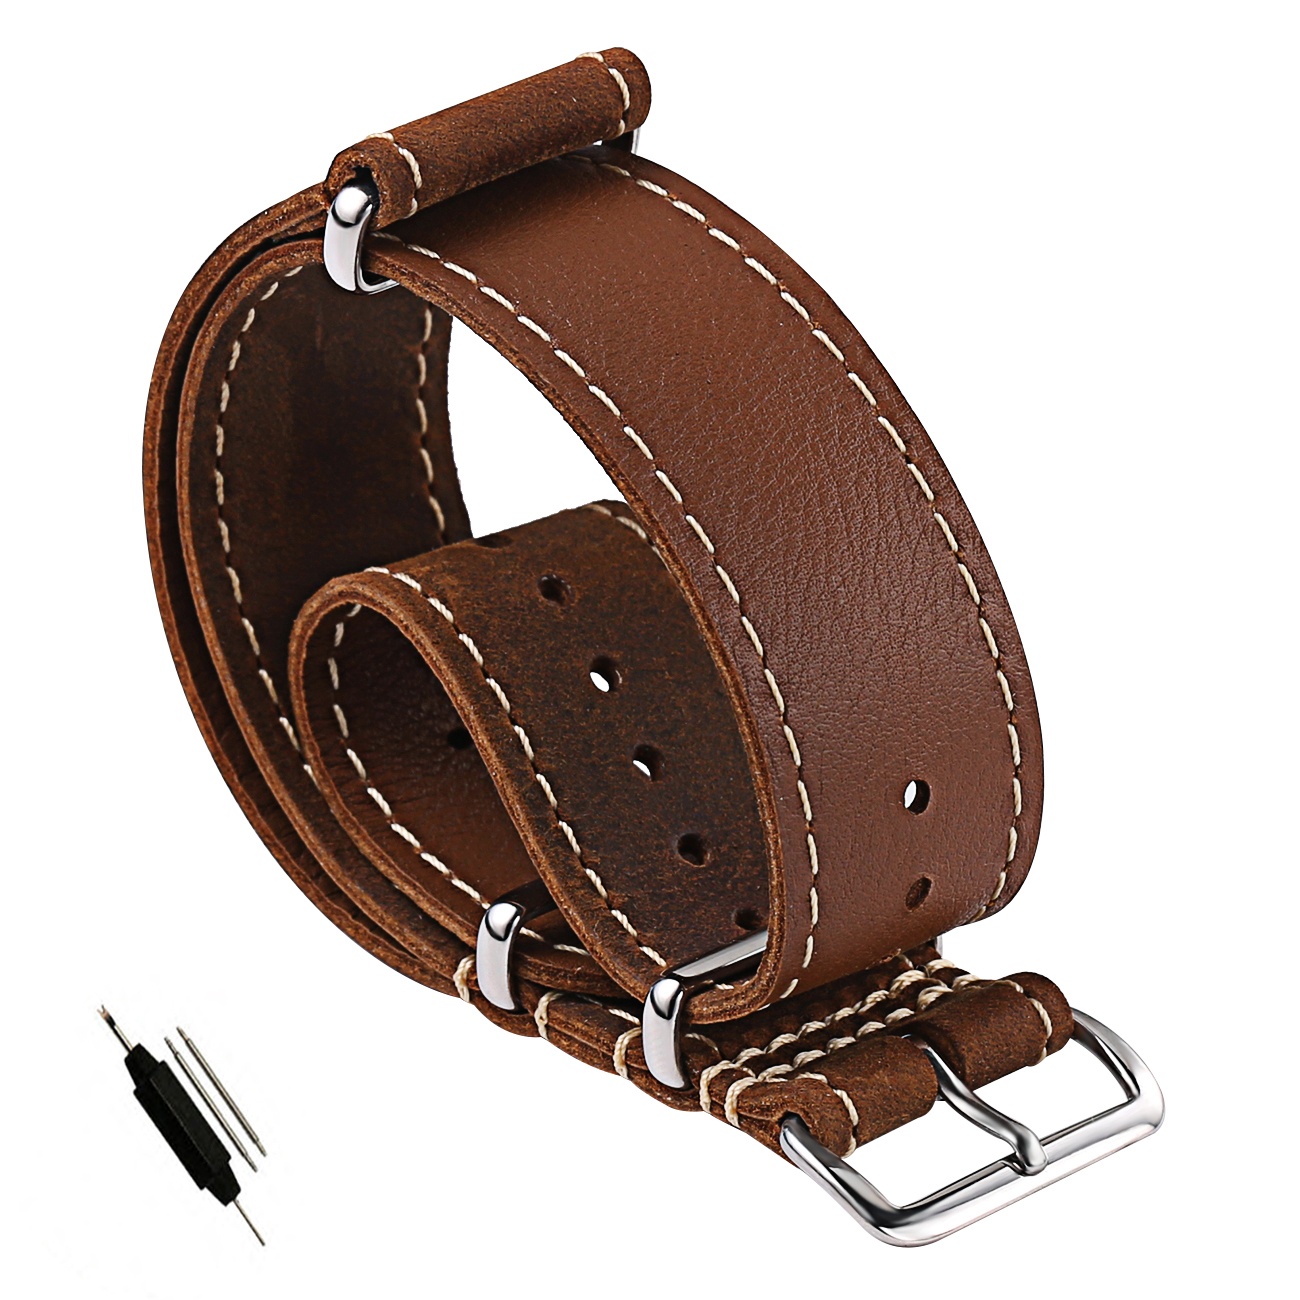 Carty 20mm 22mm Leather NATO Strap Replacement watch band Vintage Crazy Horse Handmade Leather Watch Strap Zulu Soft Waterproof vintage genuine leather high end crazy horse skin watch strap 18mm 20mm 22mm 24mm 26mm for nato zulu men woman brown watch band